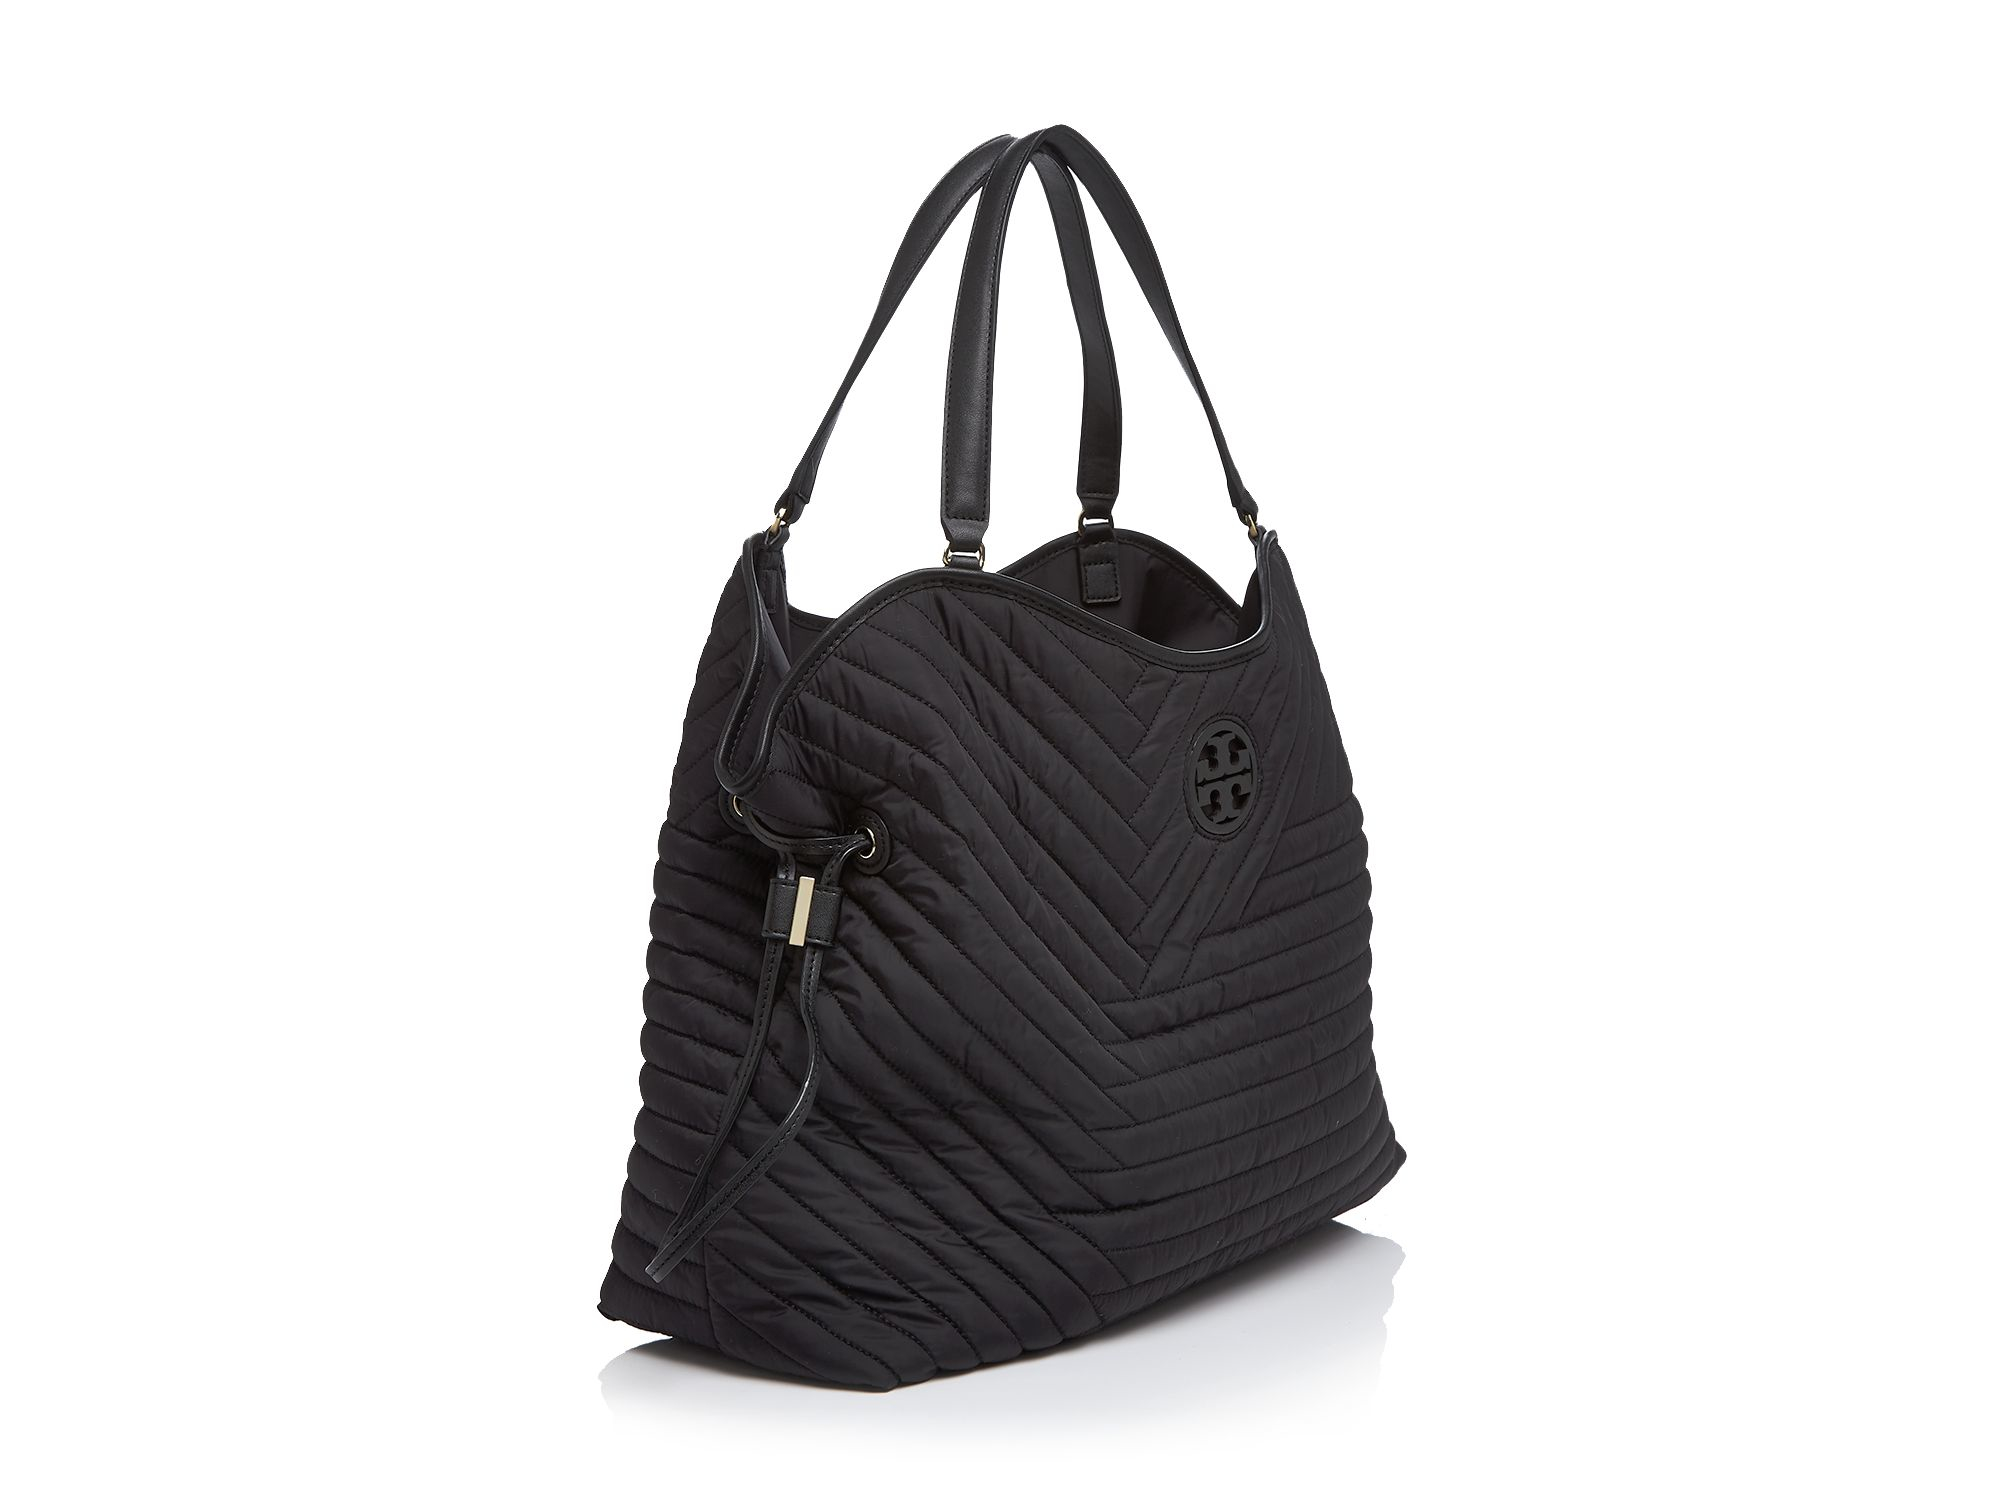 Tory Burch Quilted Nylon Tote In Black Lyst